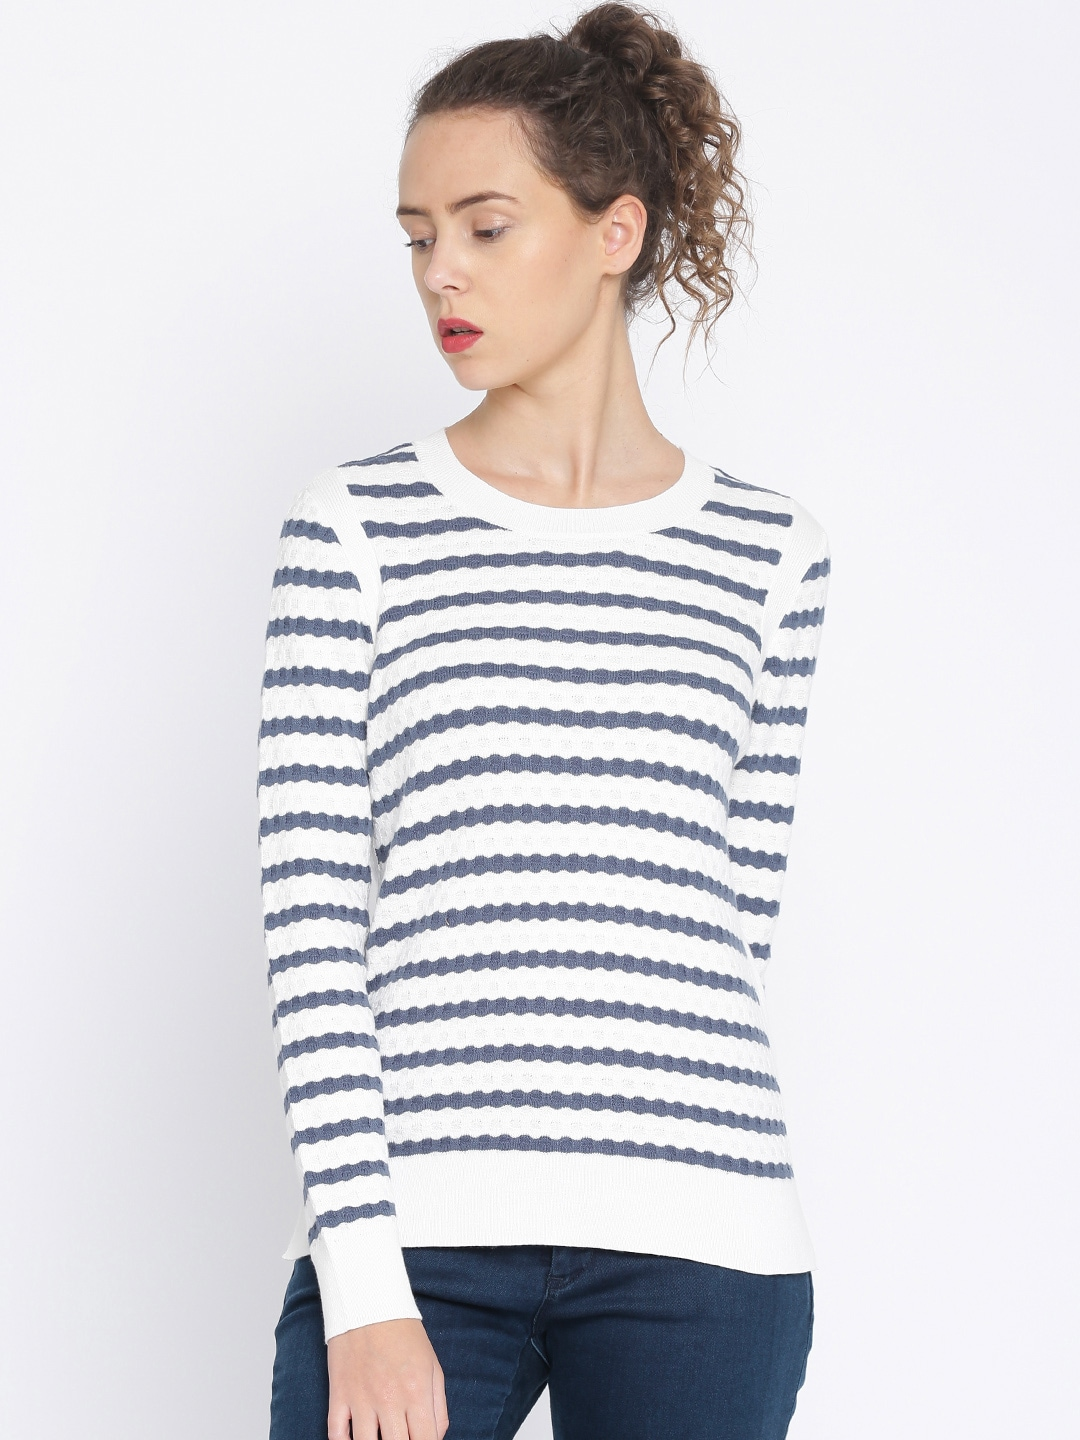 8059b84daf90e2 Tommy Hilfiger Sweaters - Buy Tommy Hilfiger Sweaters online in India